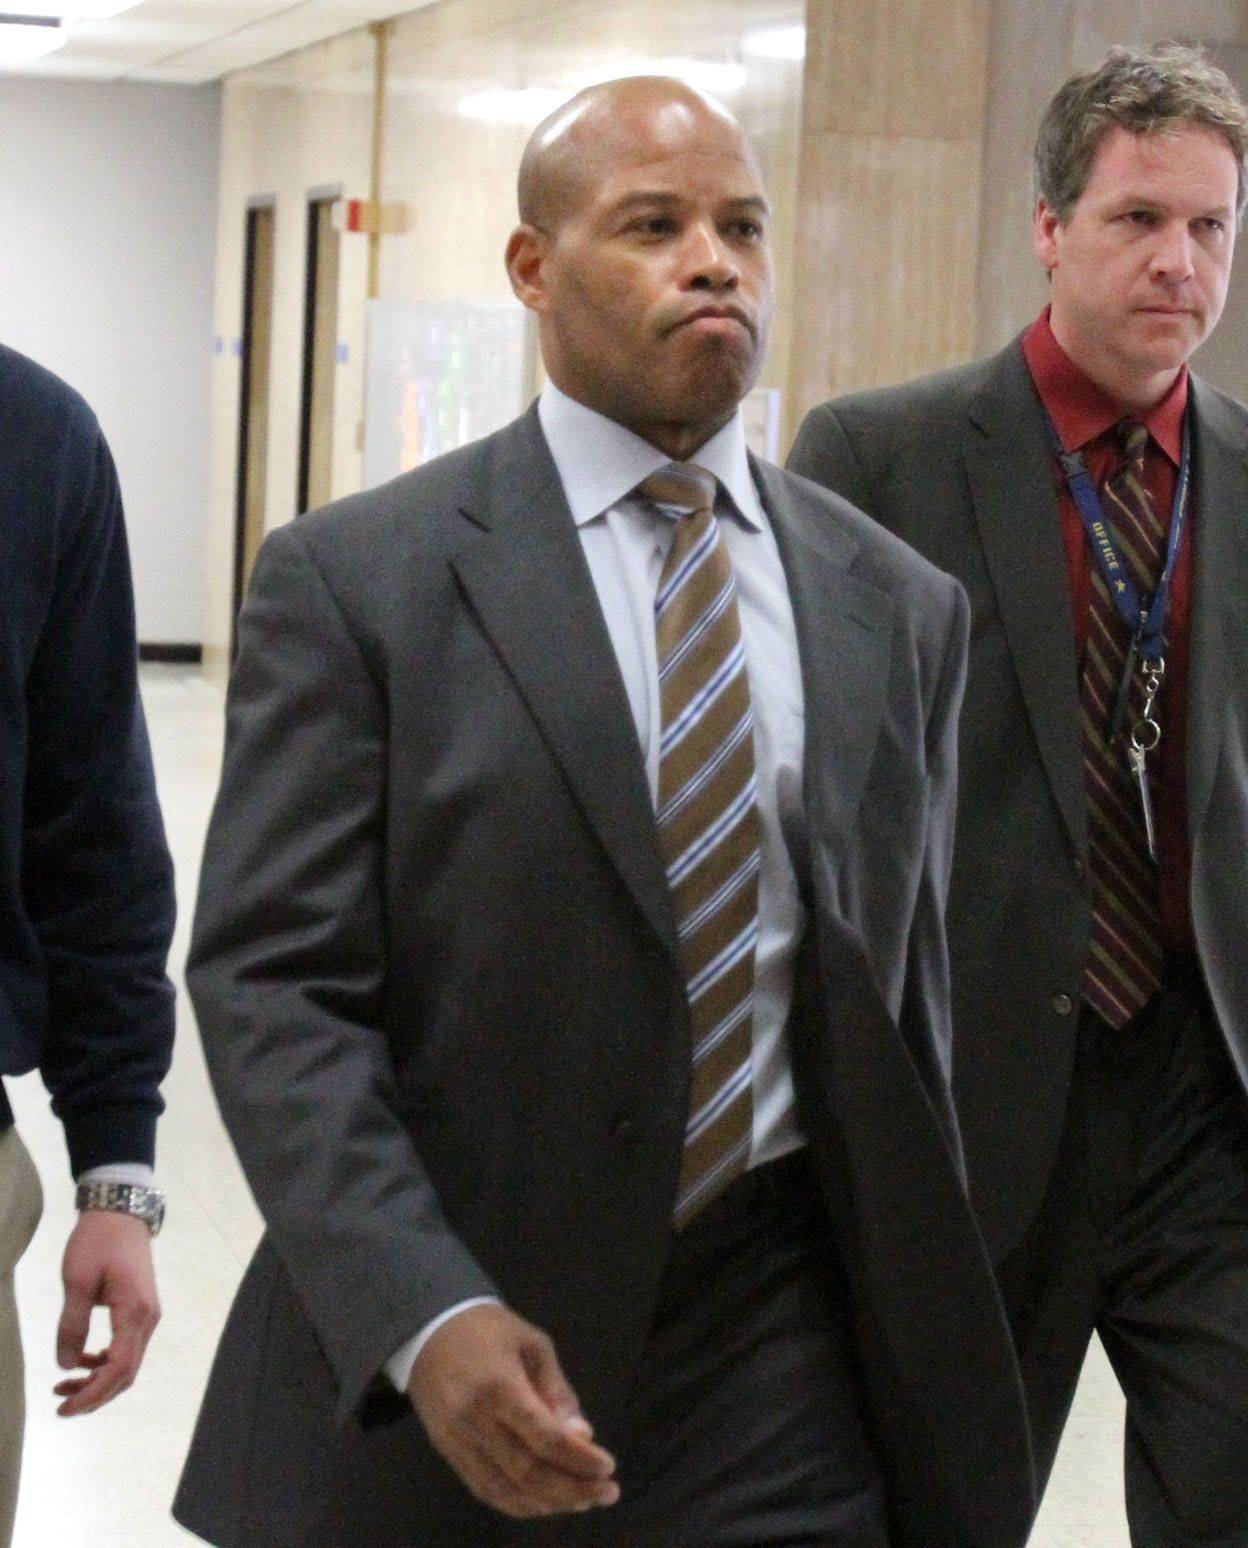 Former Chicago Bears player Shaun Gayle arrives at the Lake County Courthouse to testify in the Marni Yang trial on Tuesday in Waukegan.